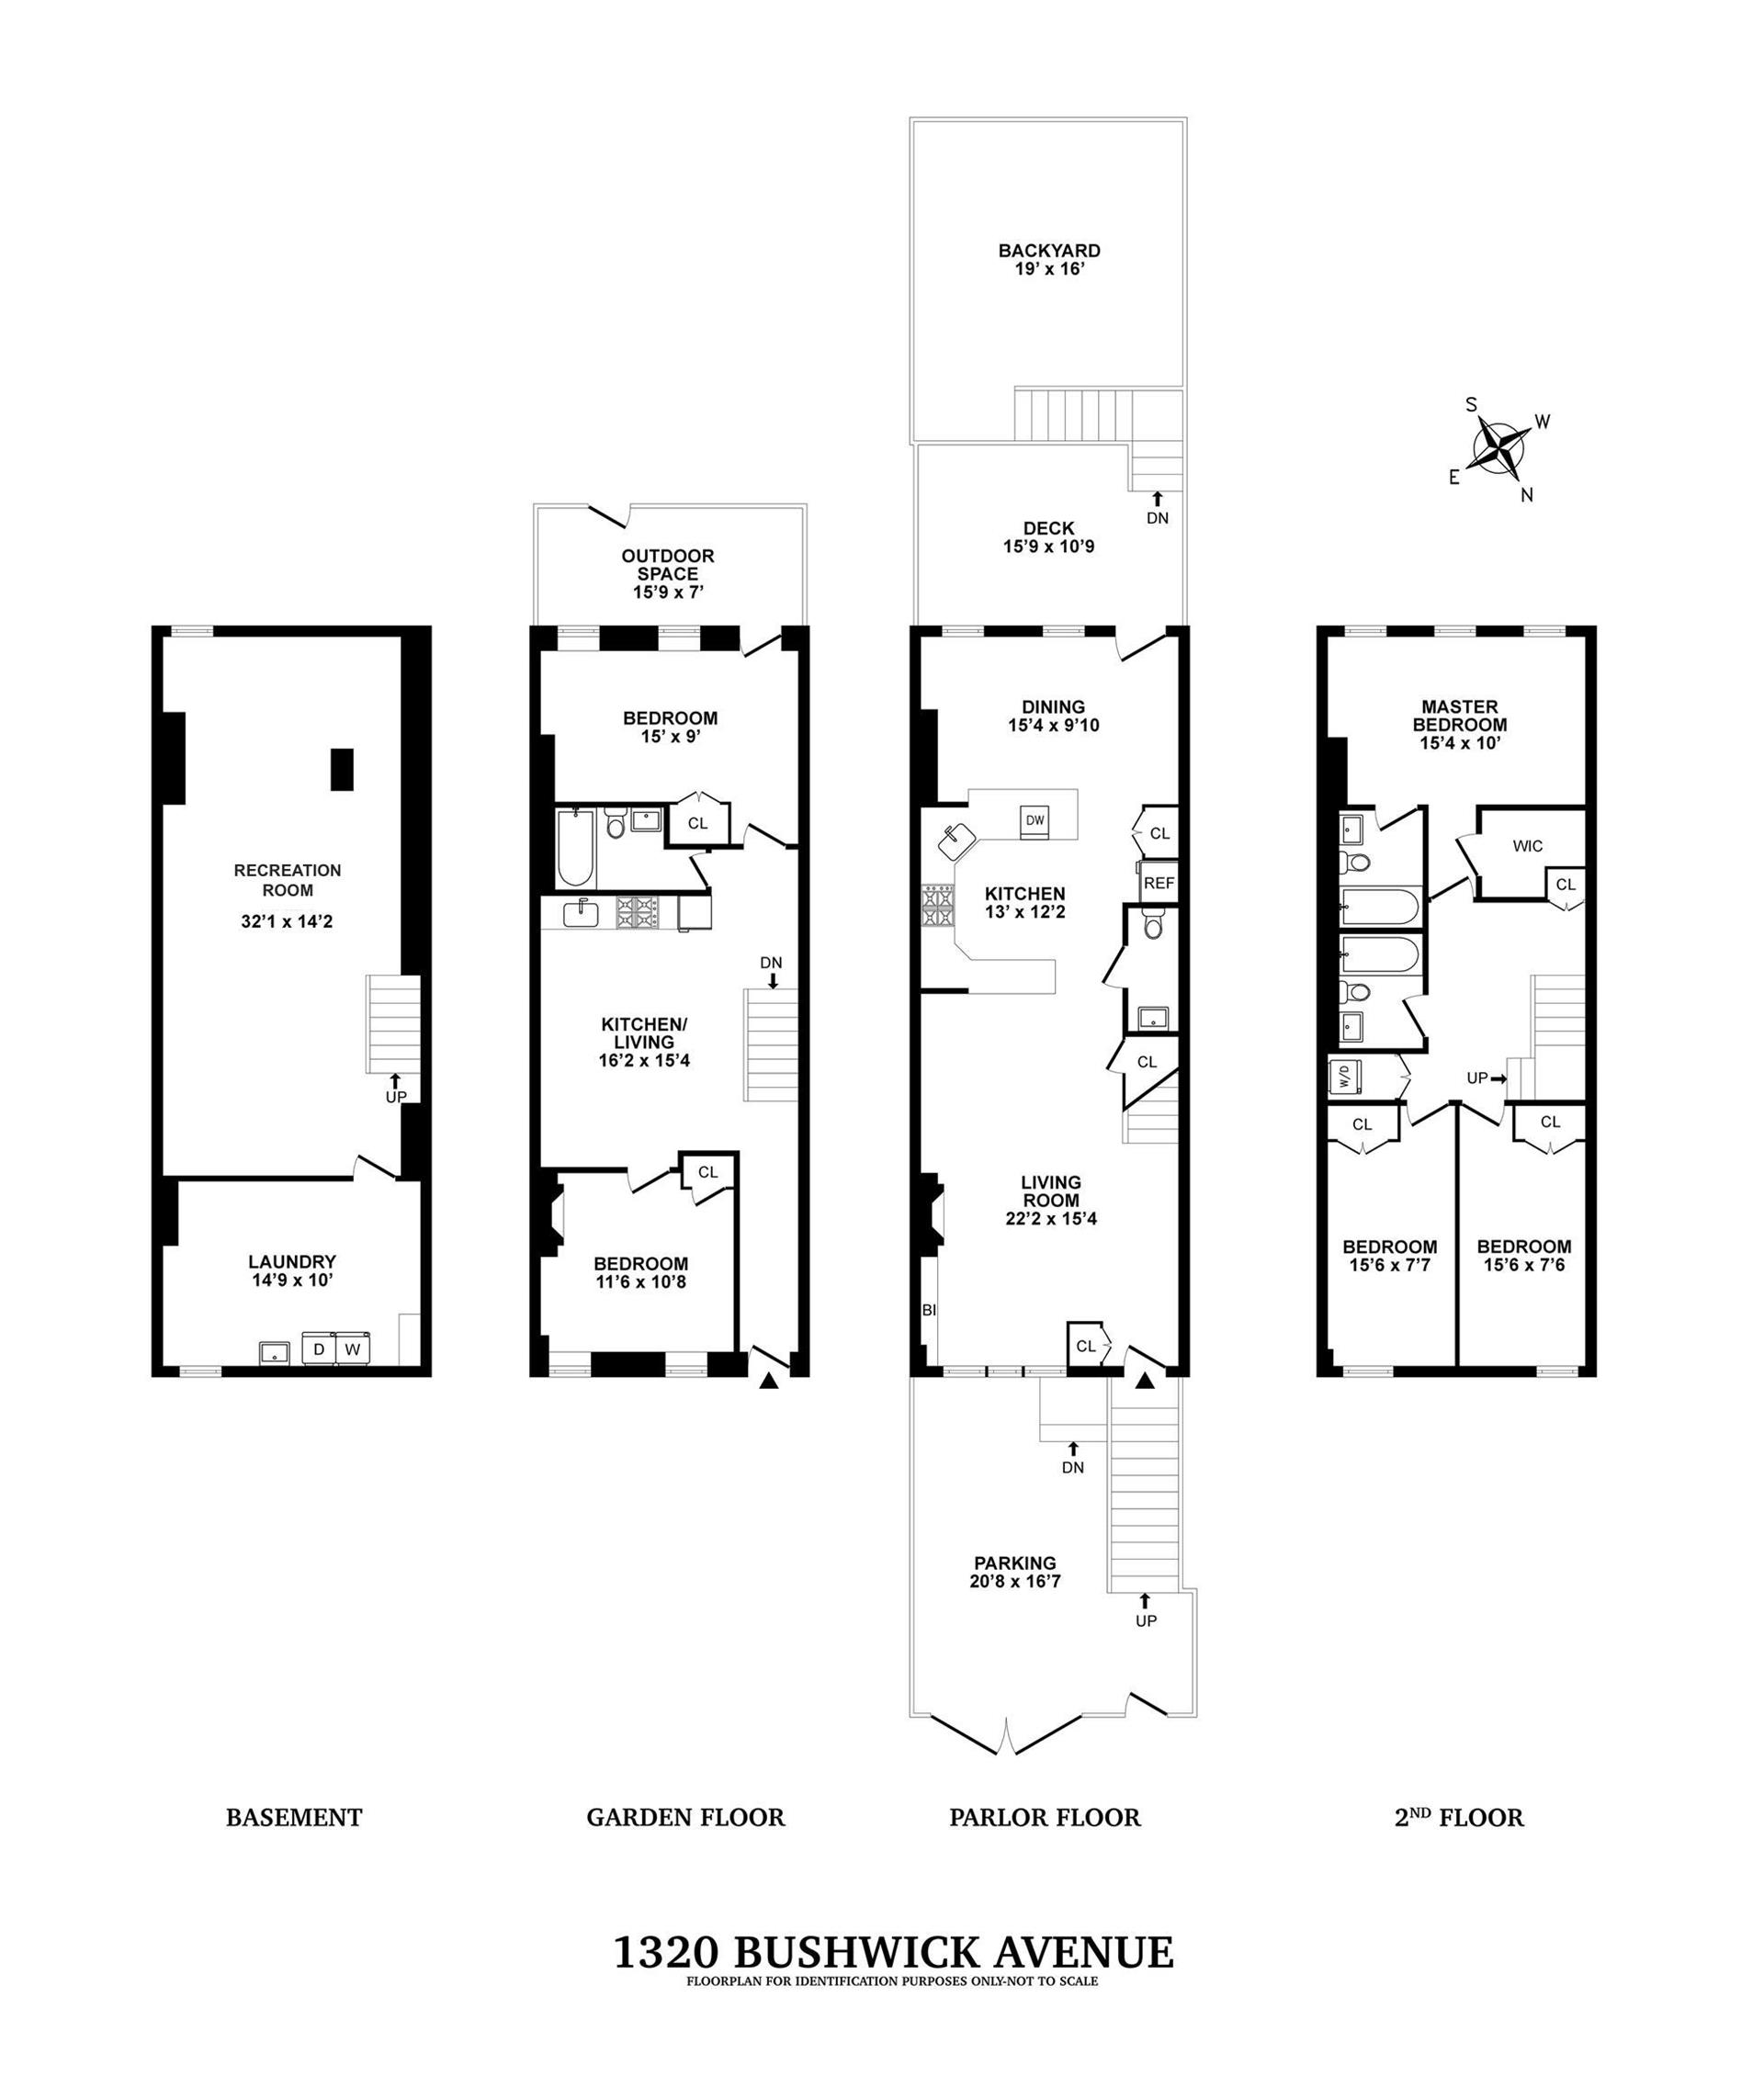 Floor plan of 1320 Bushwick Avenue - Bushwick, New York